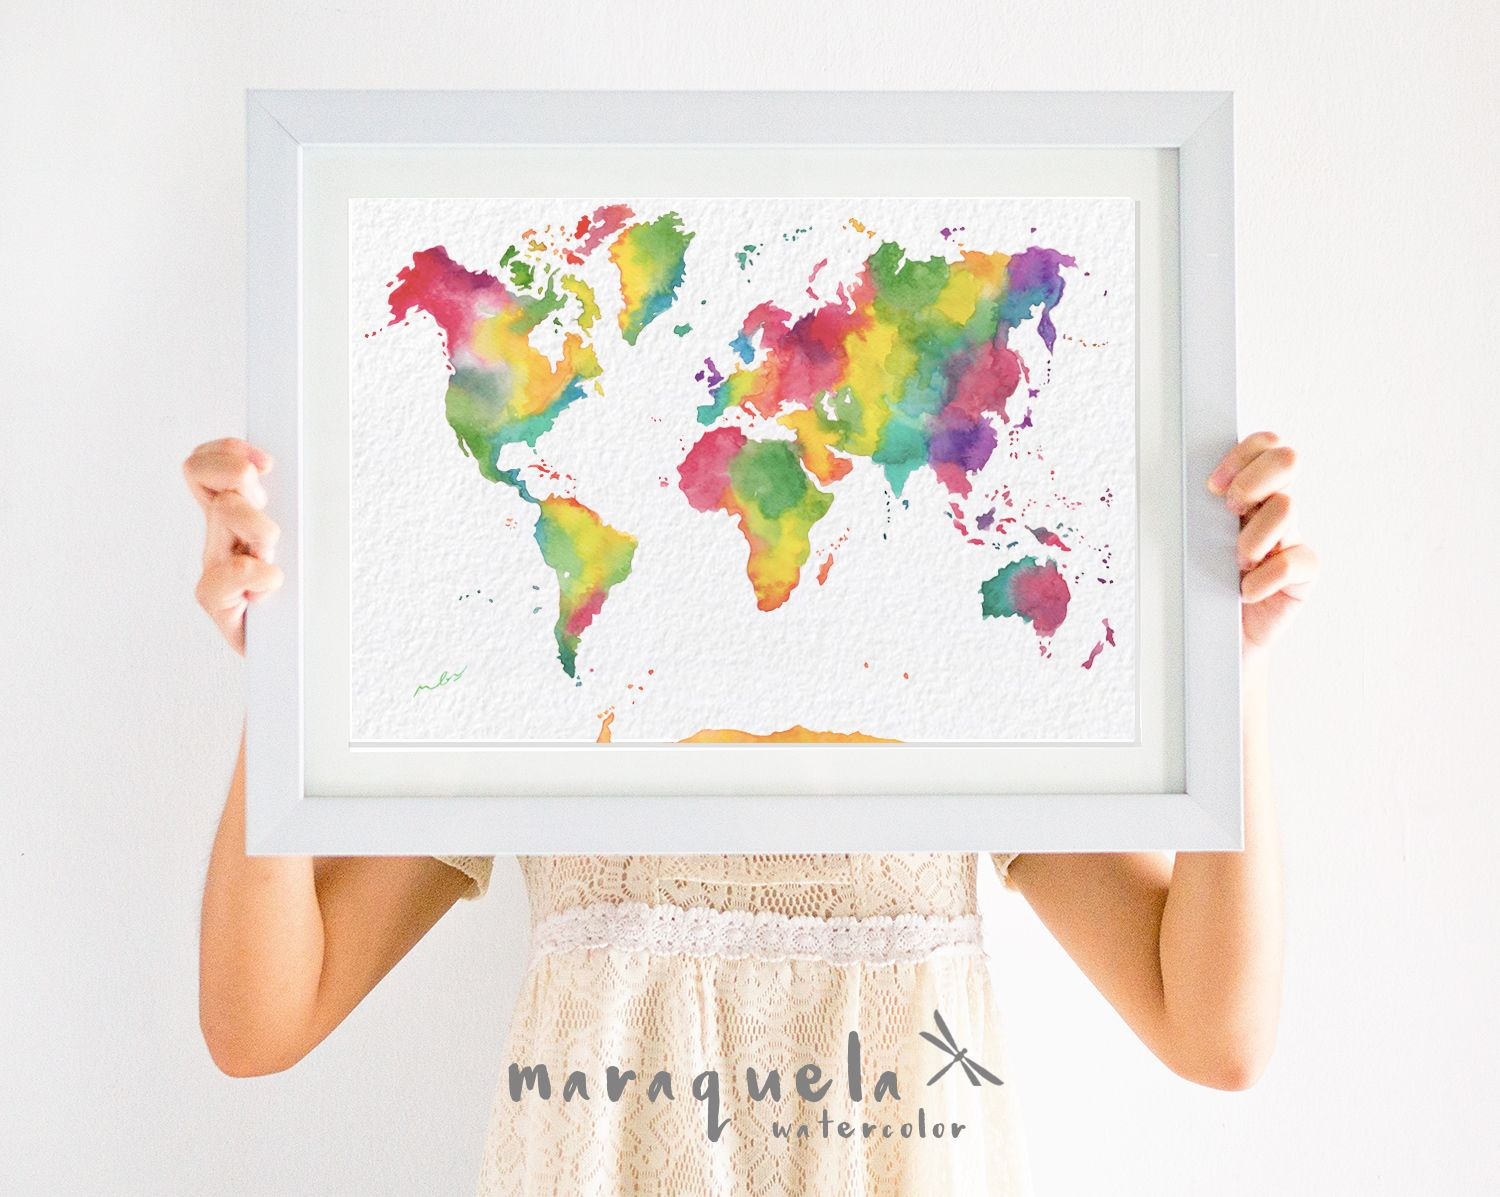 Original rainbow world map colorful watercolor painting watercolour original rainbow world map colorful watercolor painting watercolour decor gifts wedding gift gumiabroncs Gallery